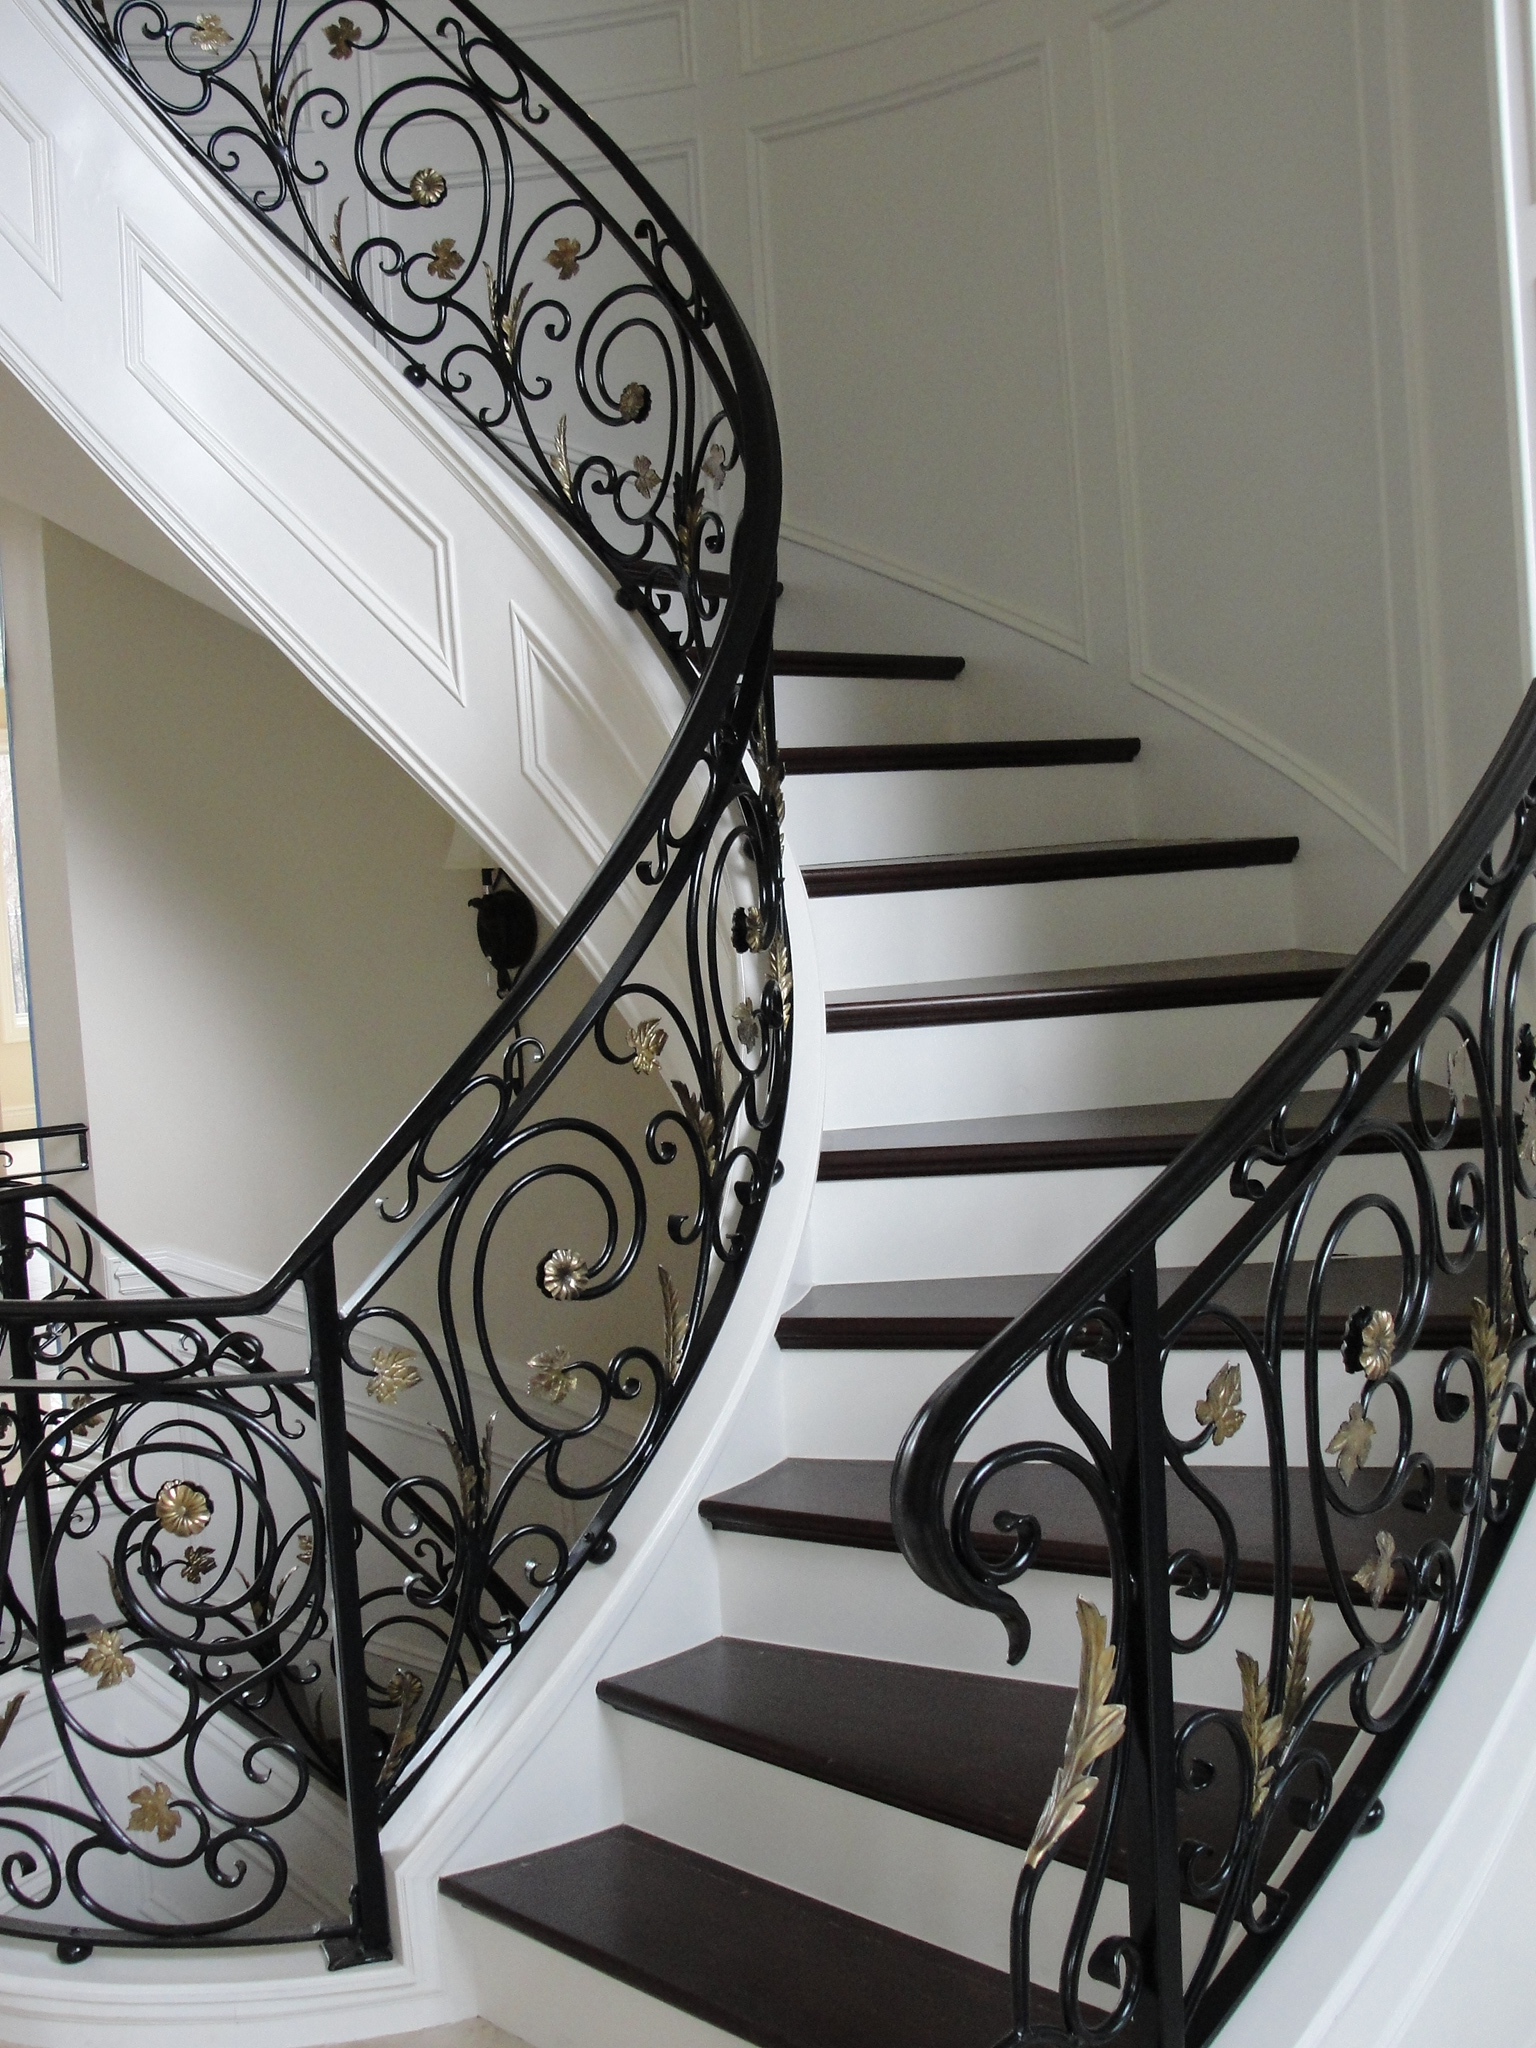 Stair designs by TM